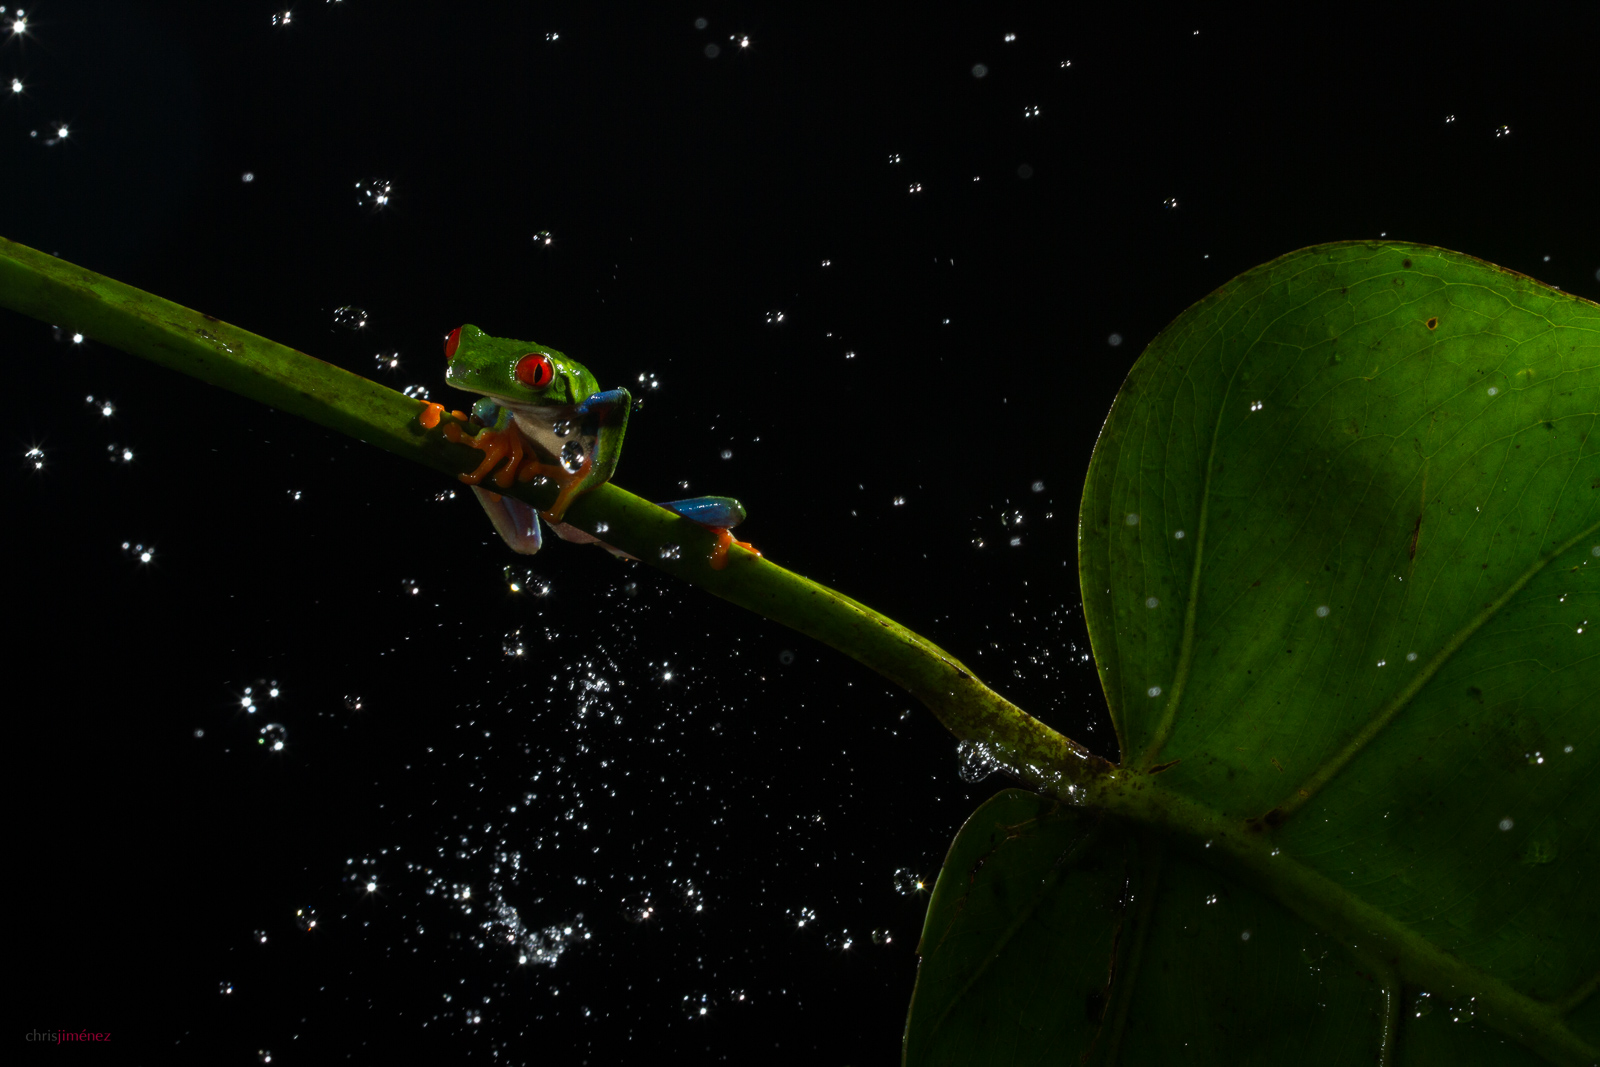 Red-eyed tree frog (Agalychnis callidryas) in the rain at the low lands of Costa Rica